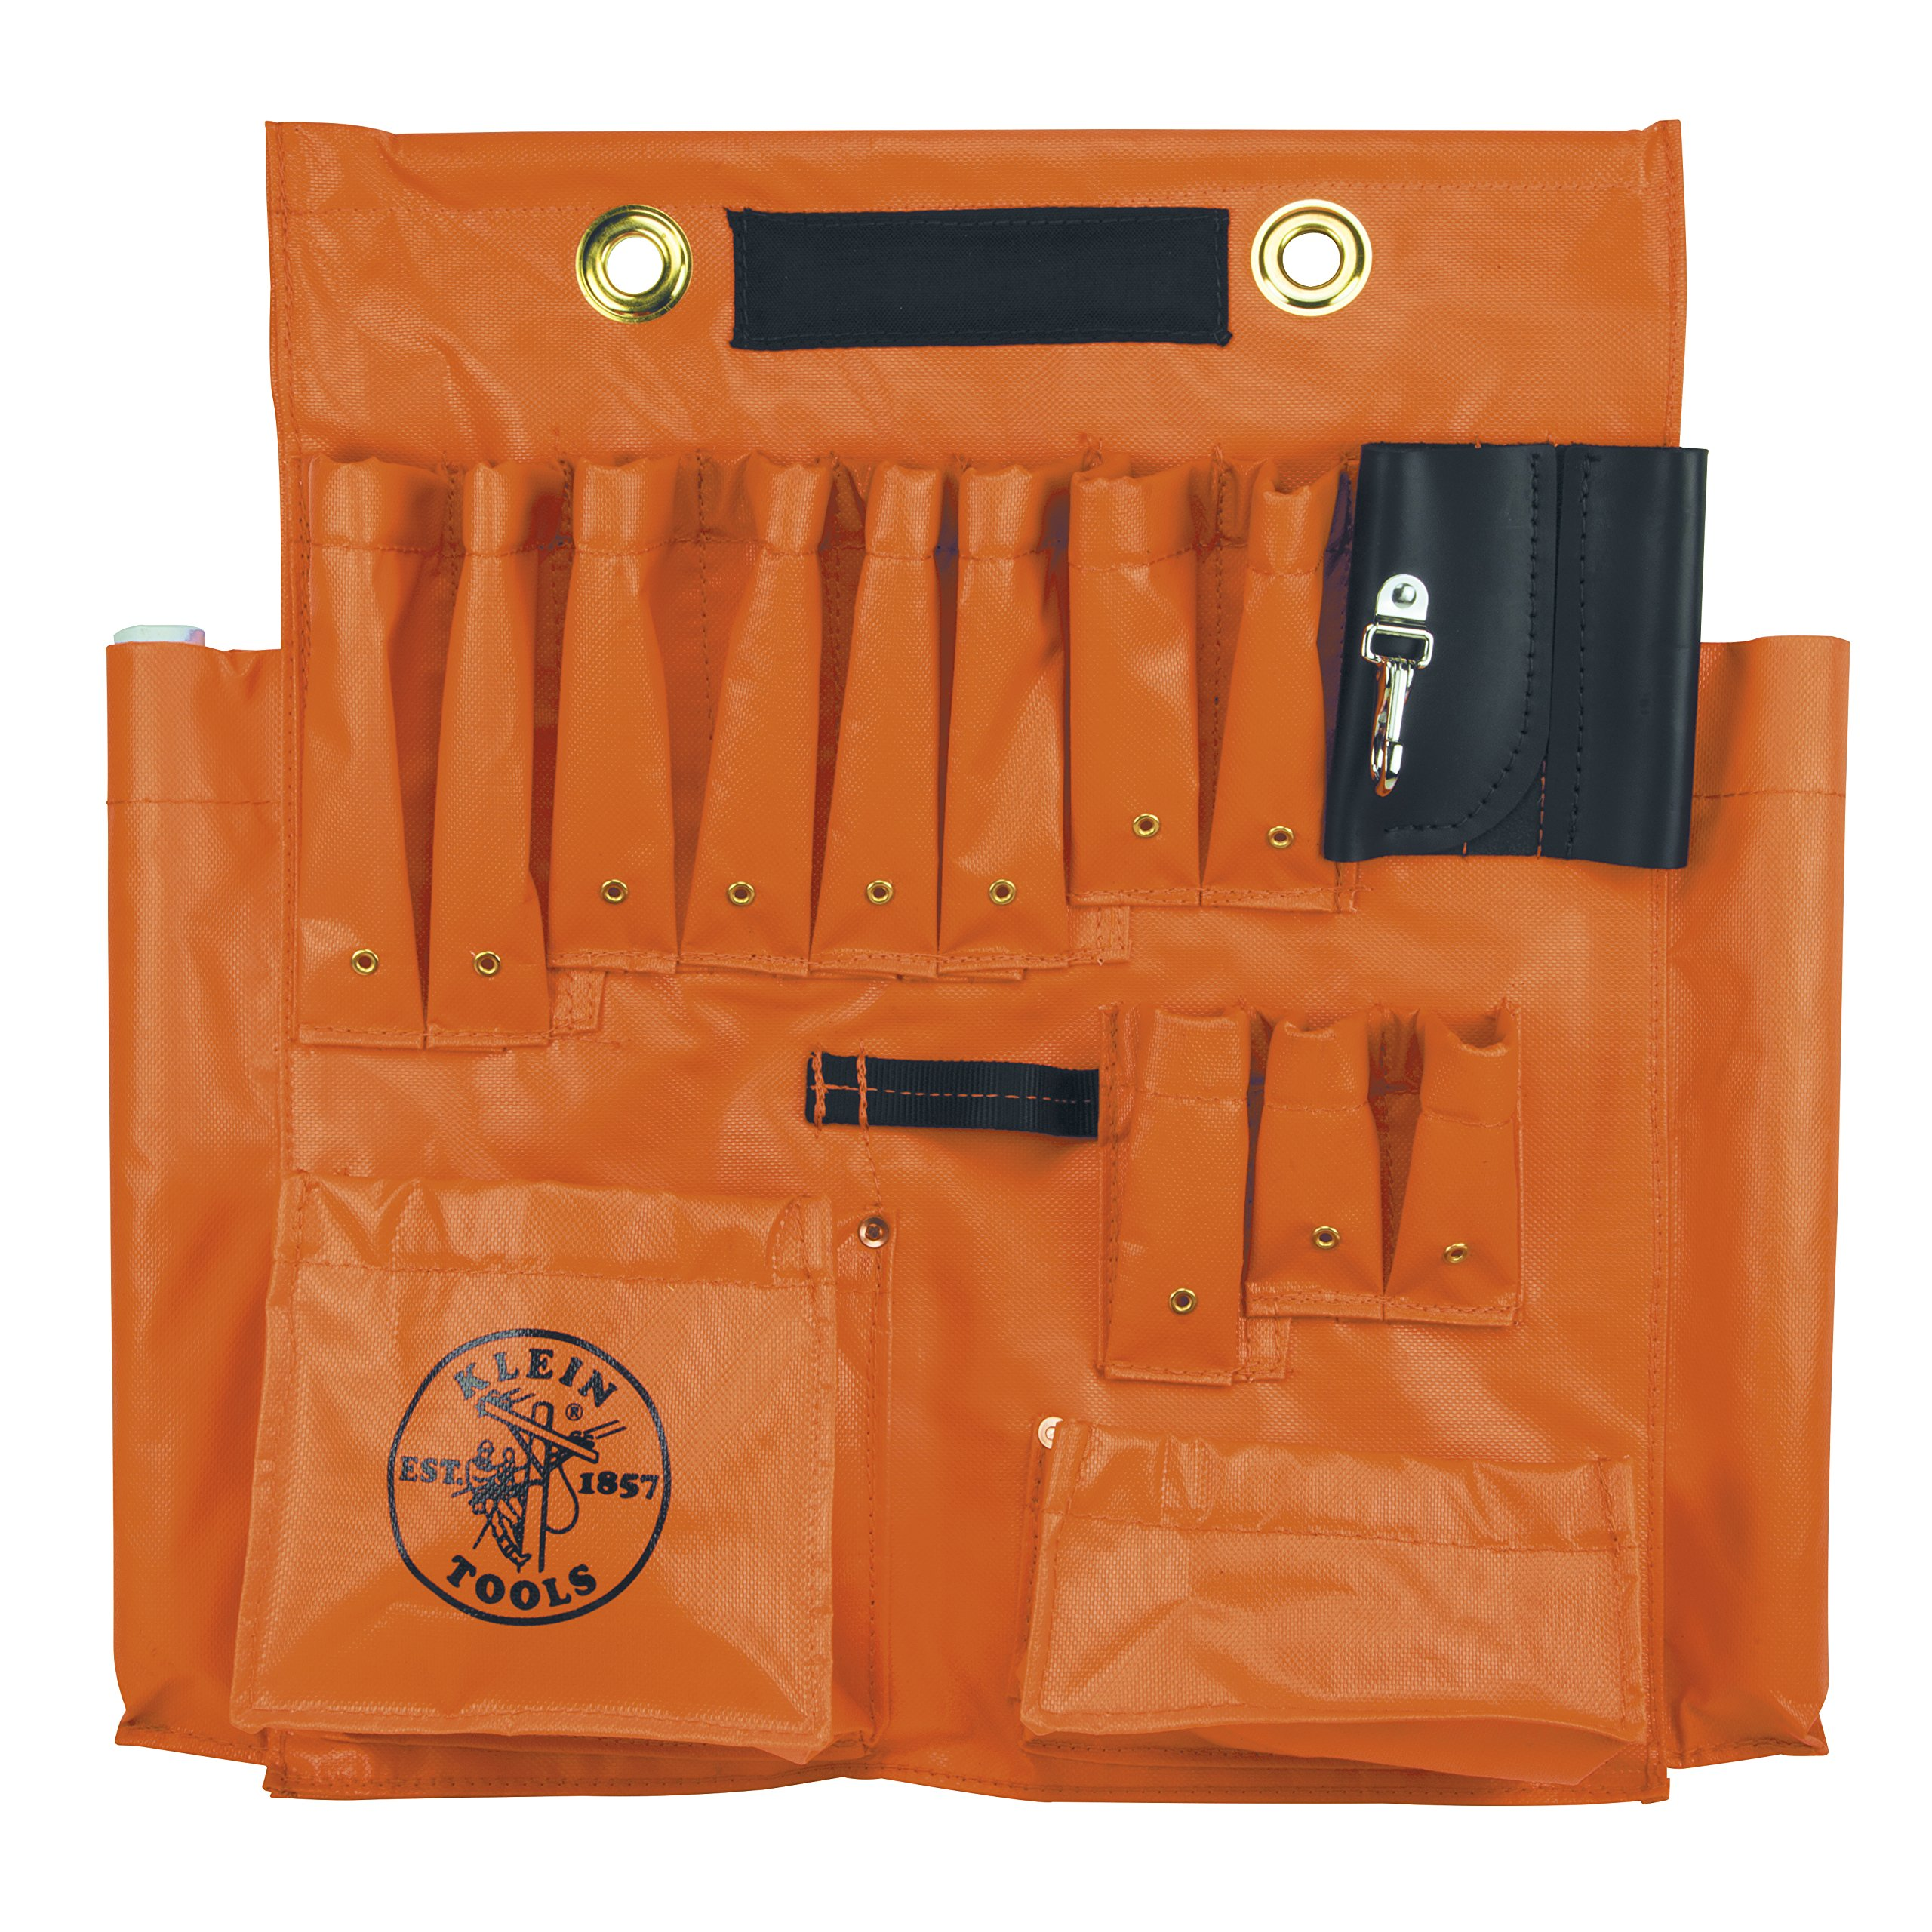 Klein Tools 51829M Aerial Apron with Magnet, Large by Klein Tools